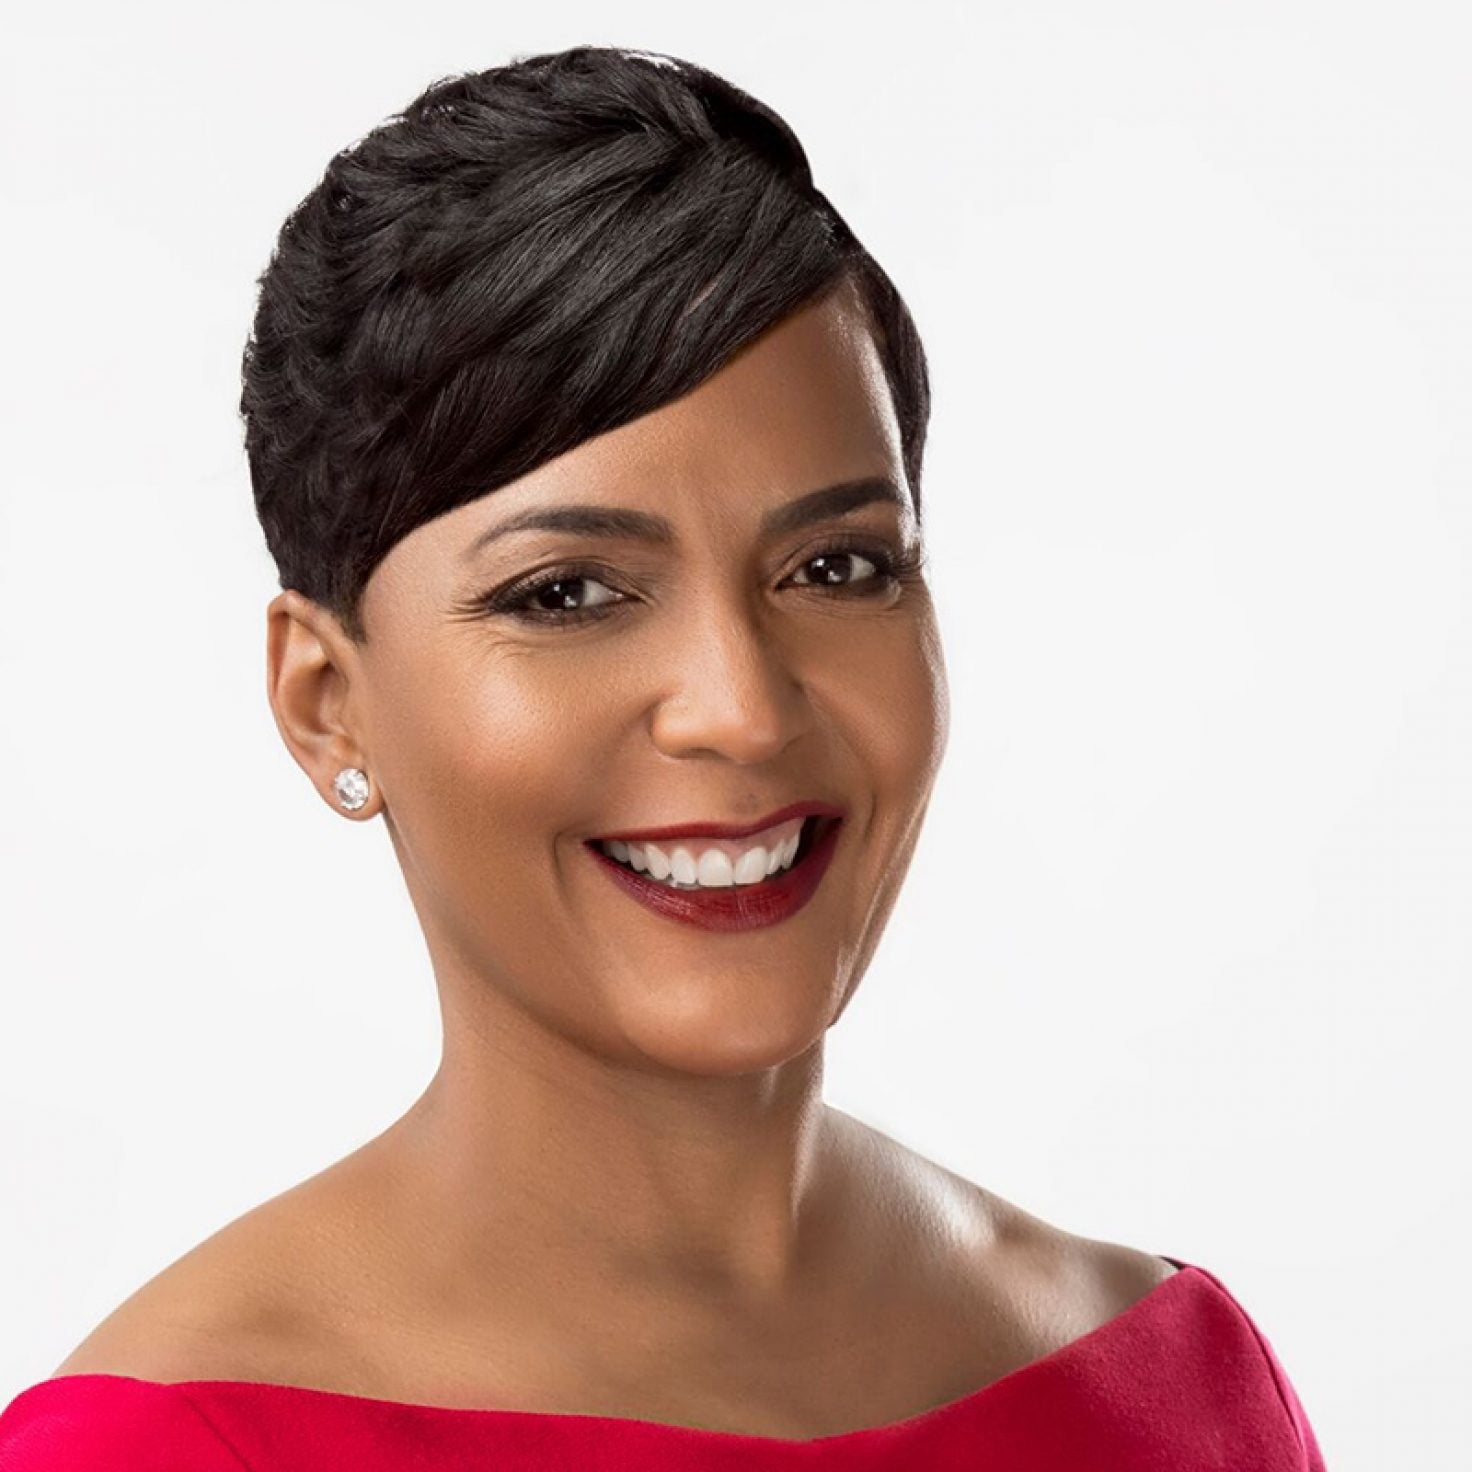 Atlanta Mayor Keisha Lance Bottoms Receives Racist Text Calling Her N-Word